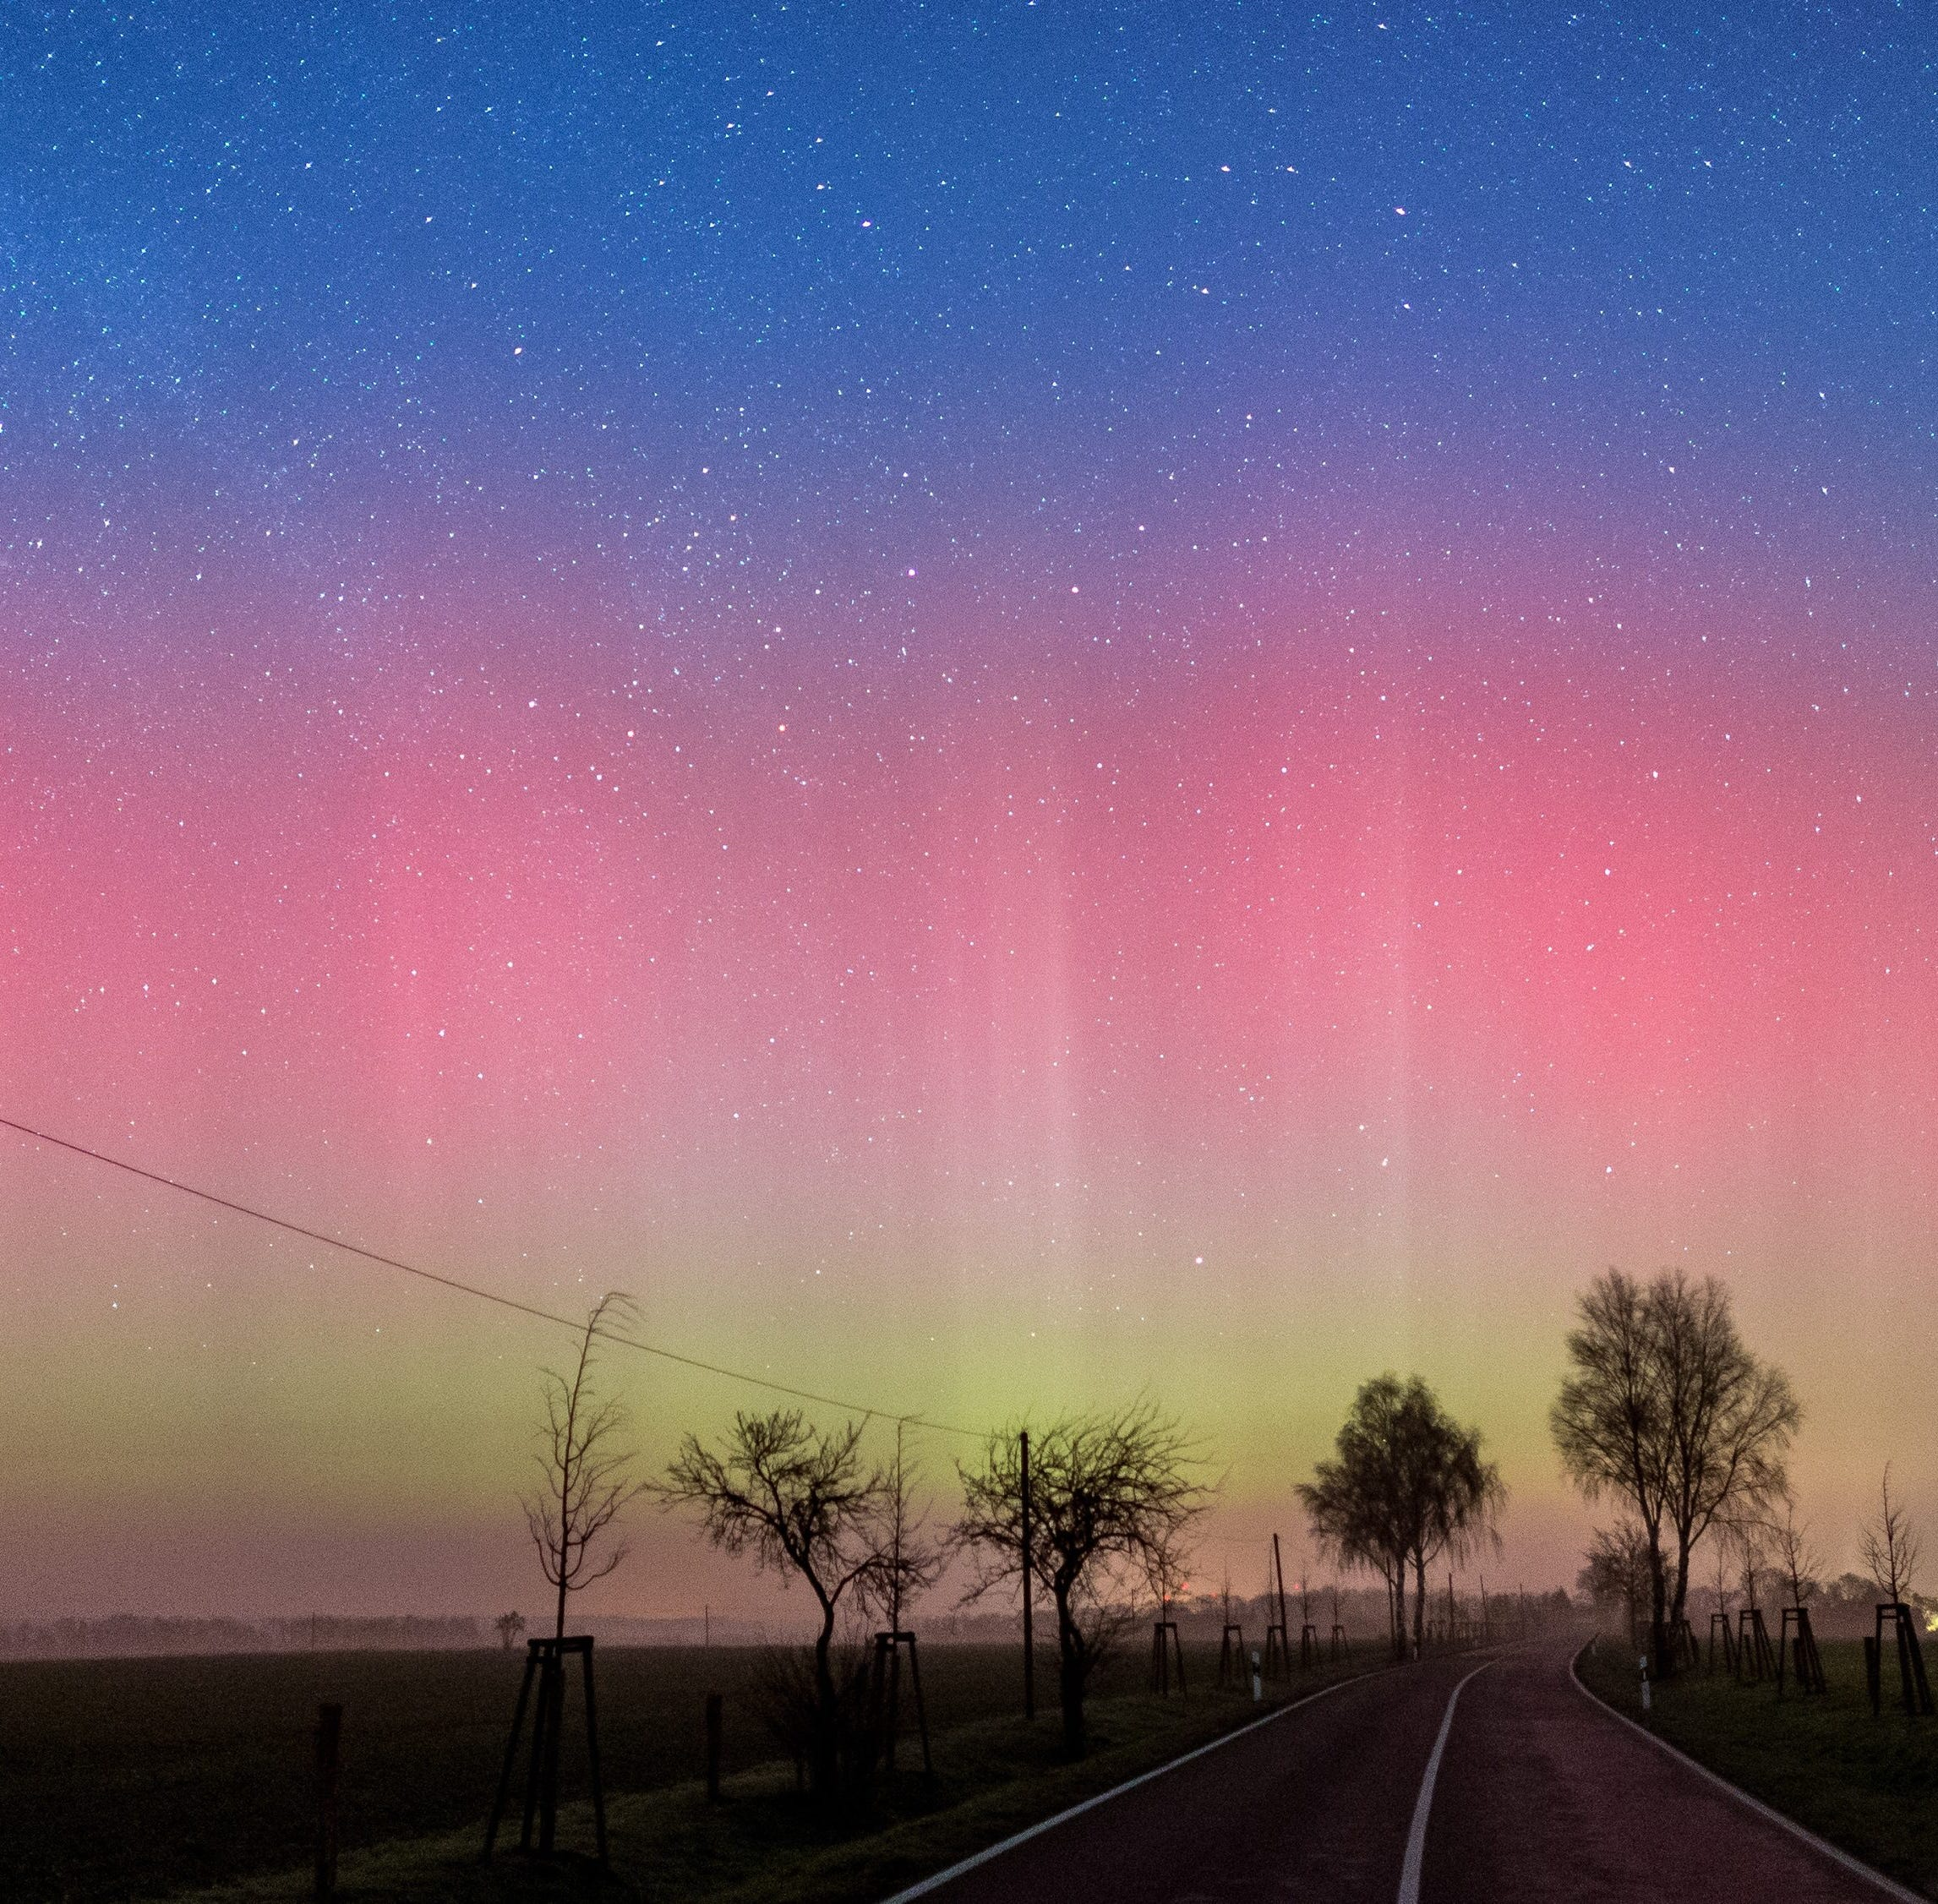 Northern Lights in NJ? Aurora borealis could appear in our skies tonight